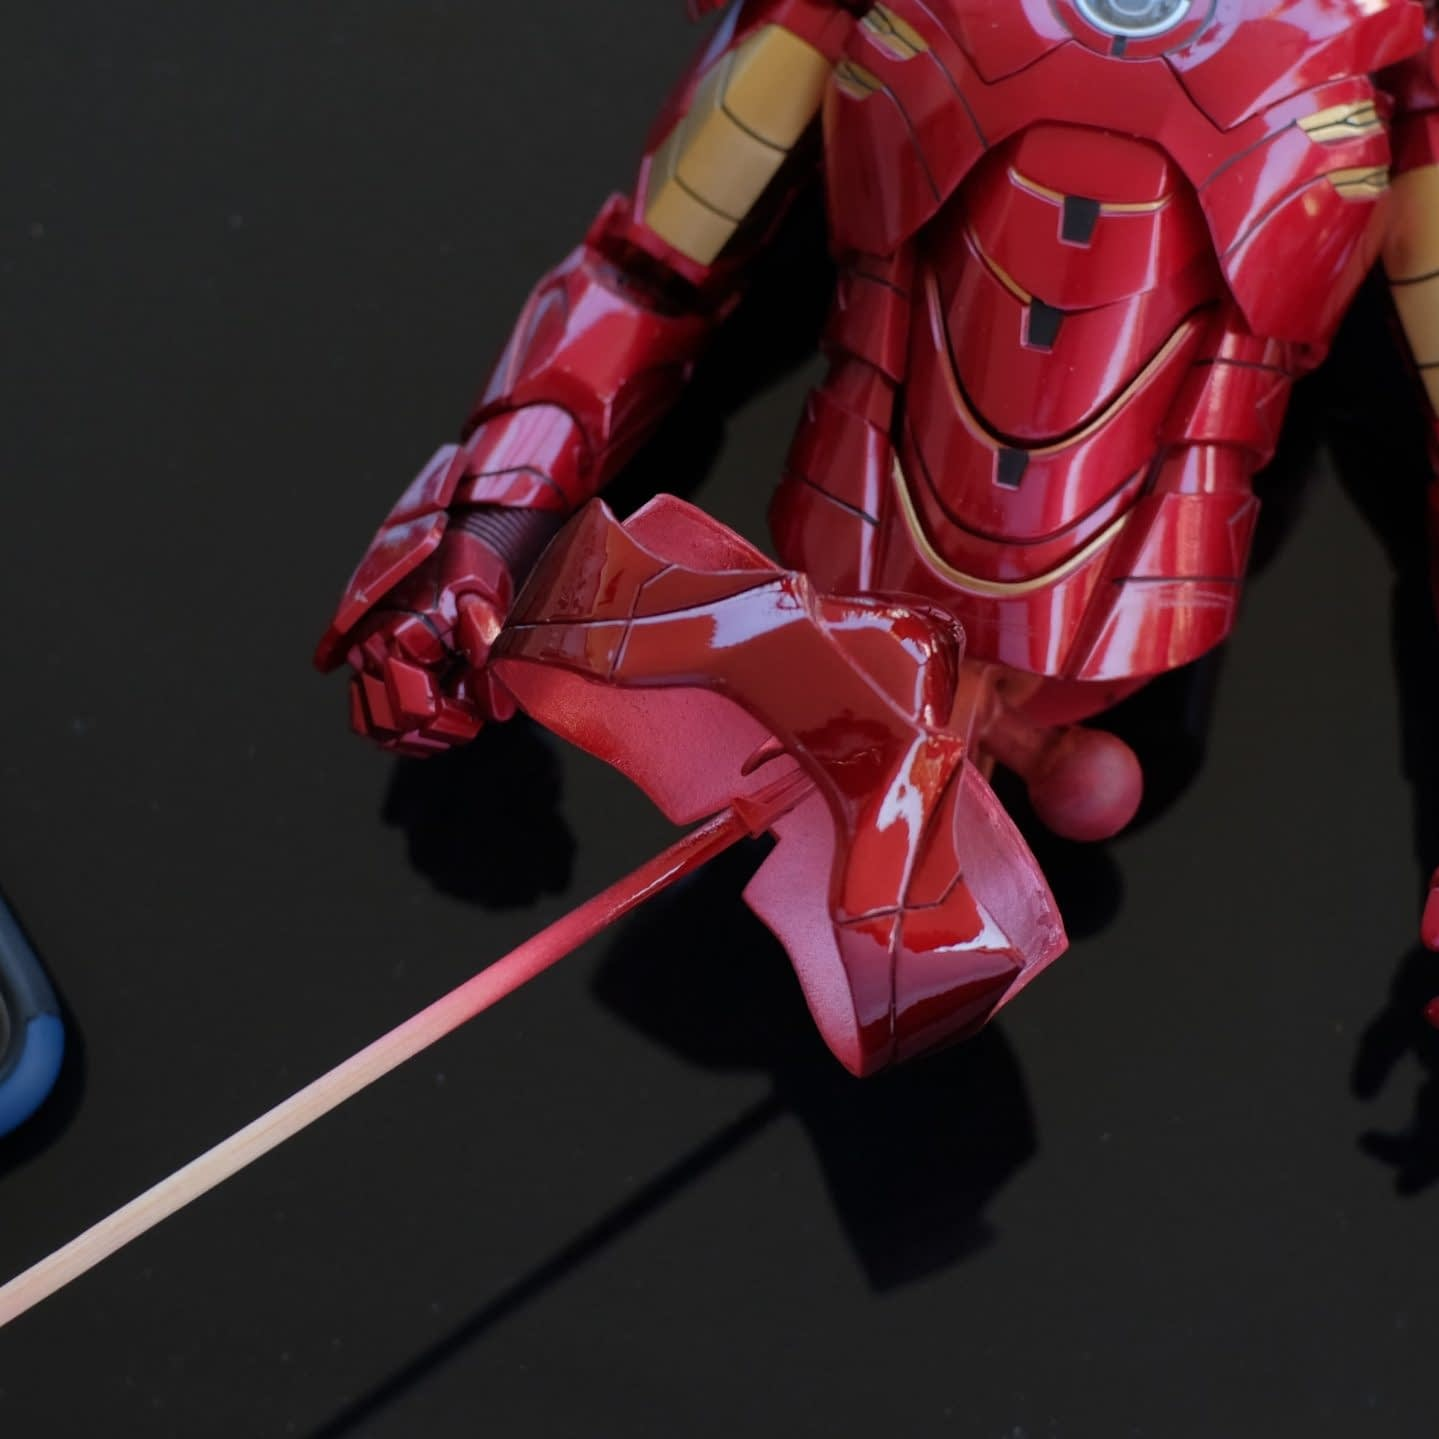 How to fix HT's Iron Man pink panty issue 29